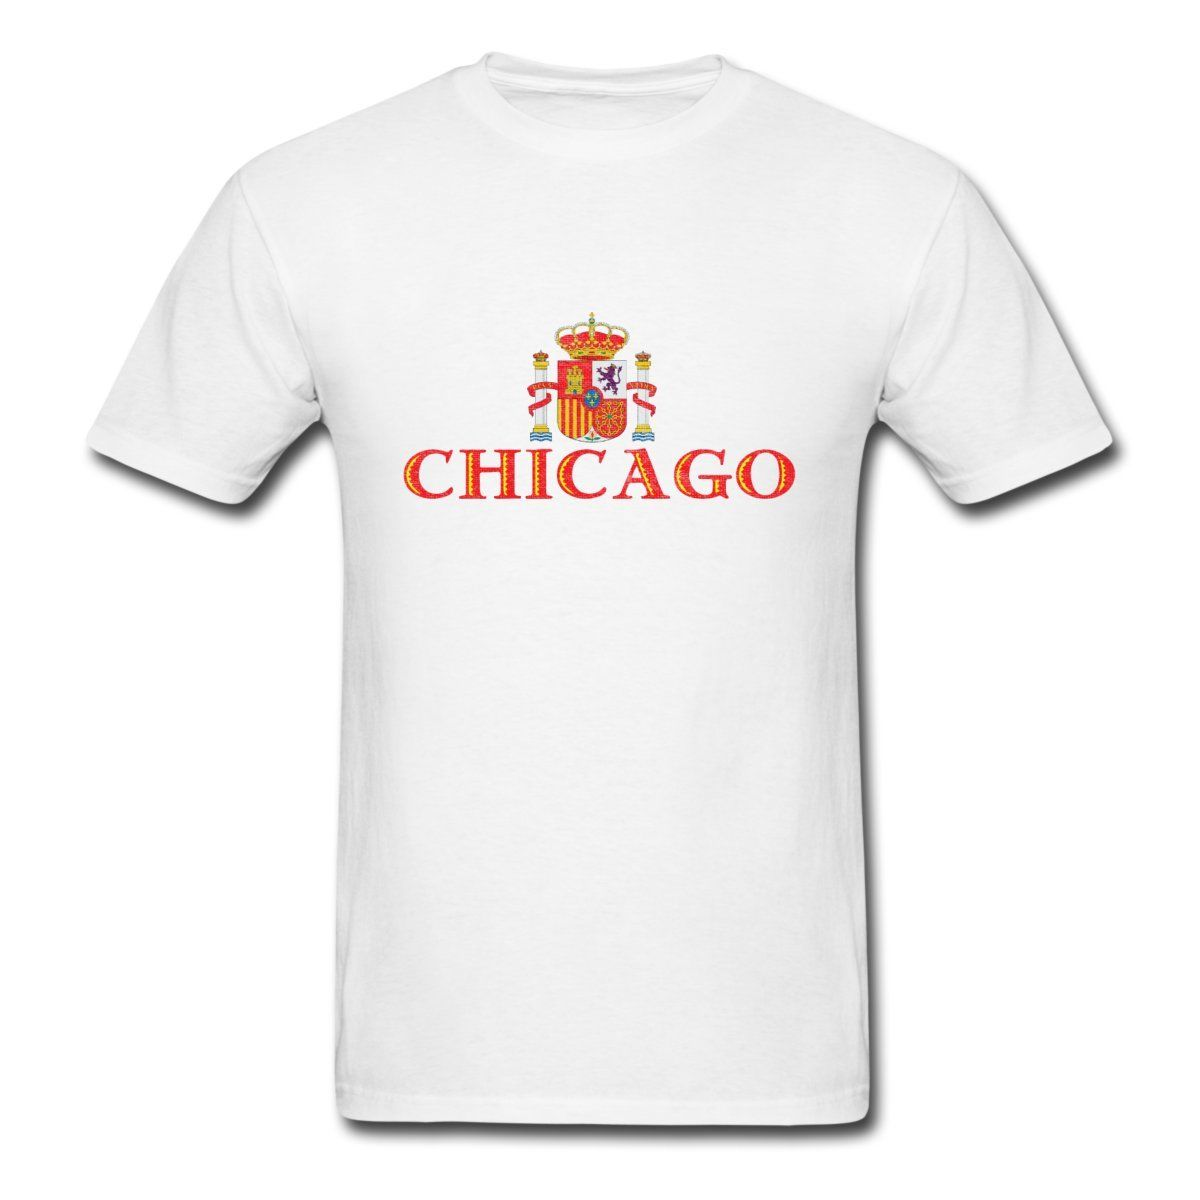 Design t shirt sell - Chicago Spanish Coat Of Arms Men S T Shirt New Men Cotton T Shirt Cool